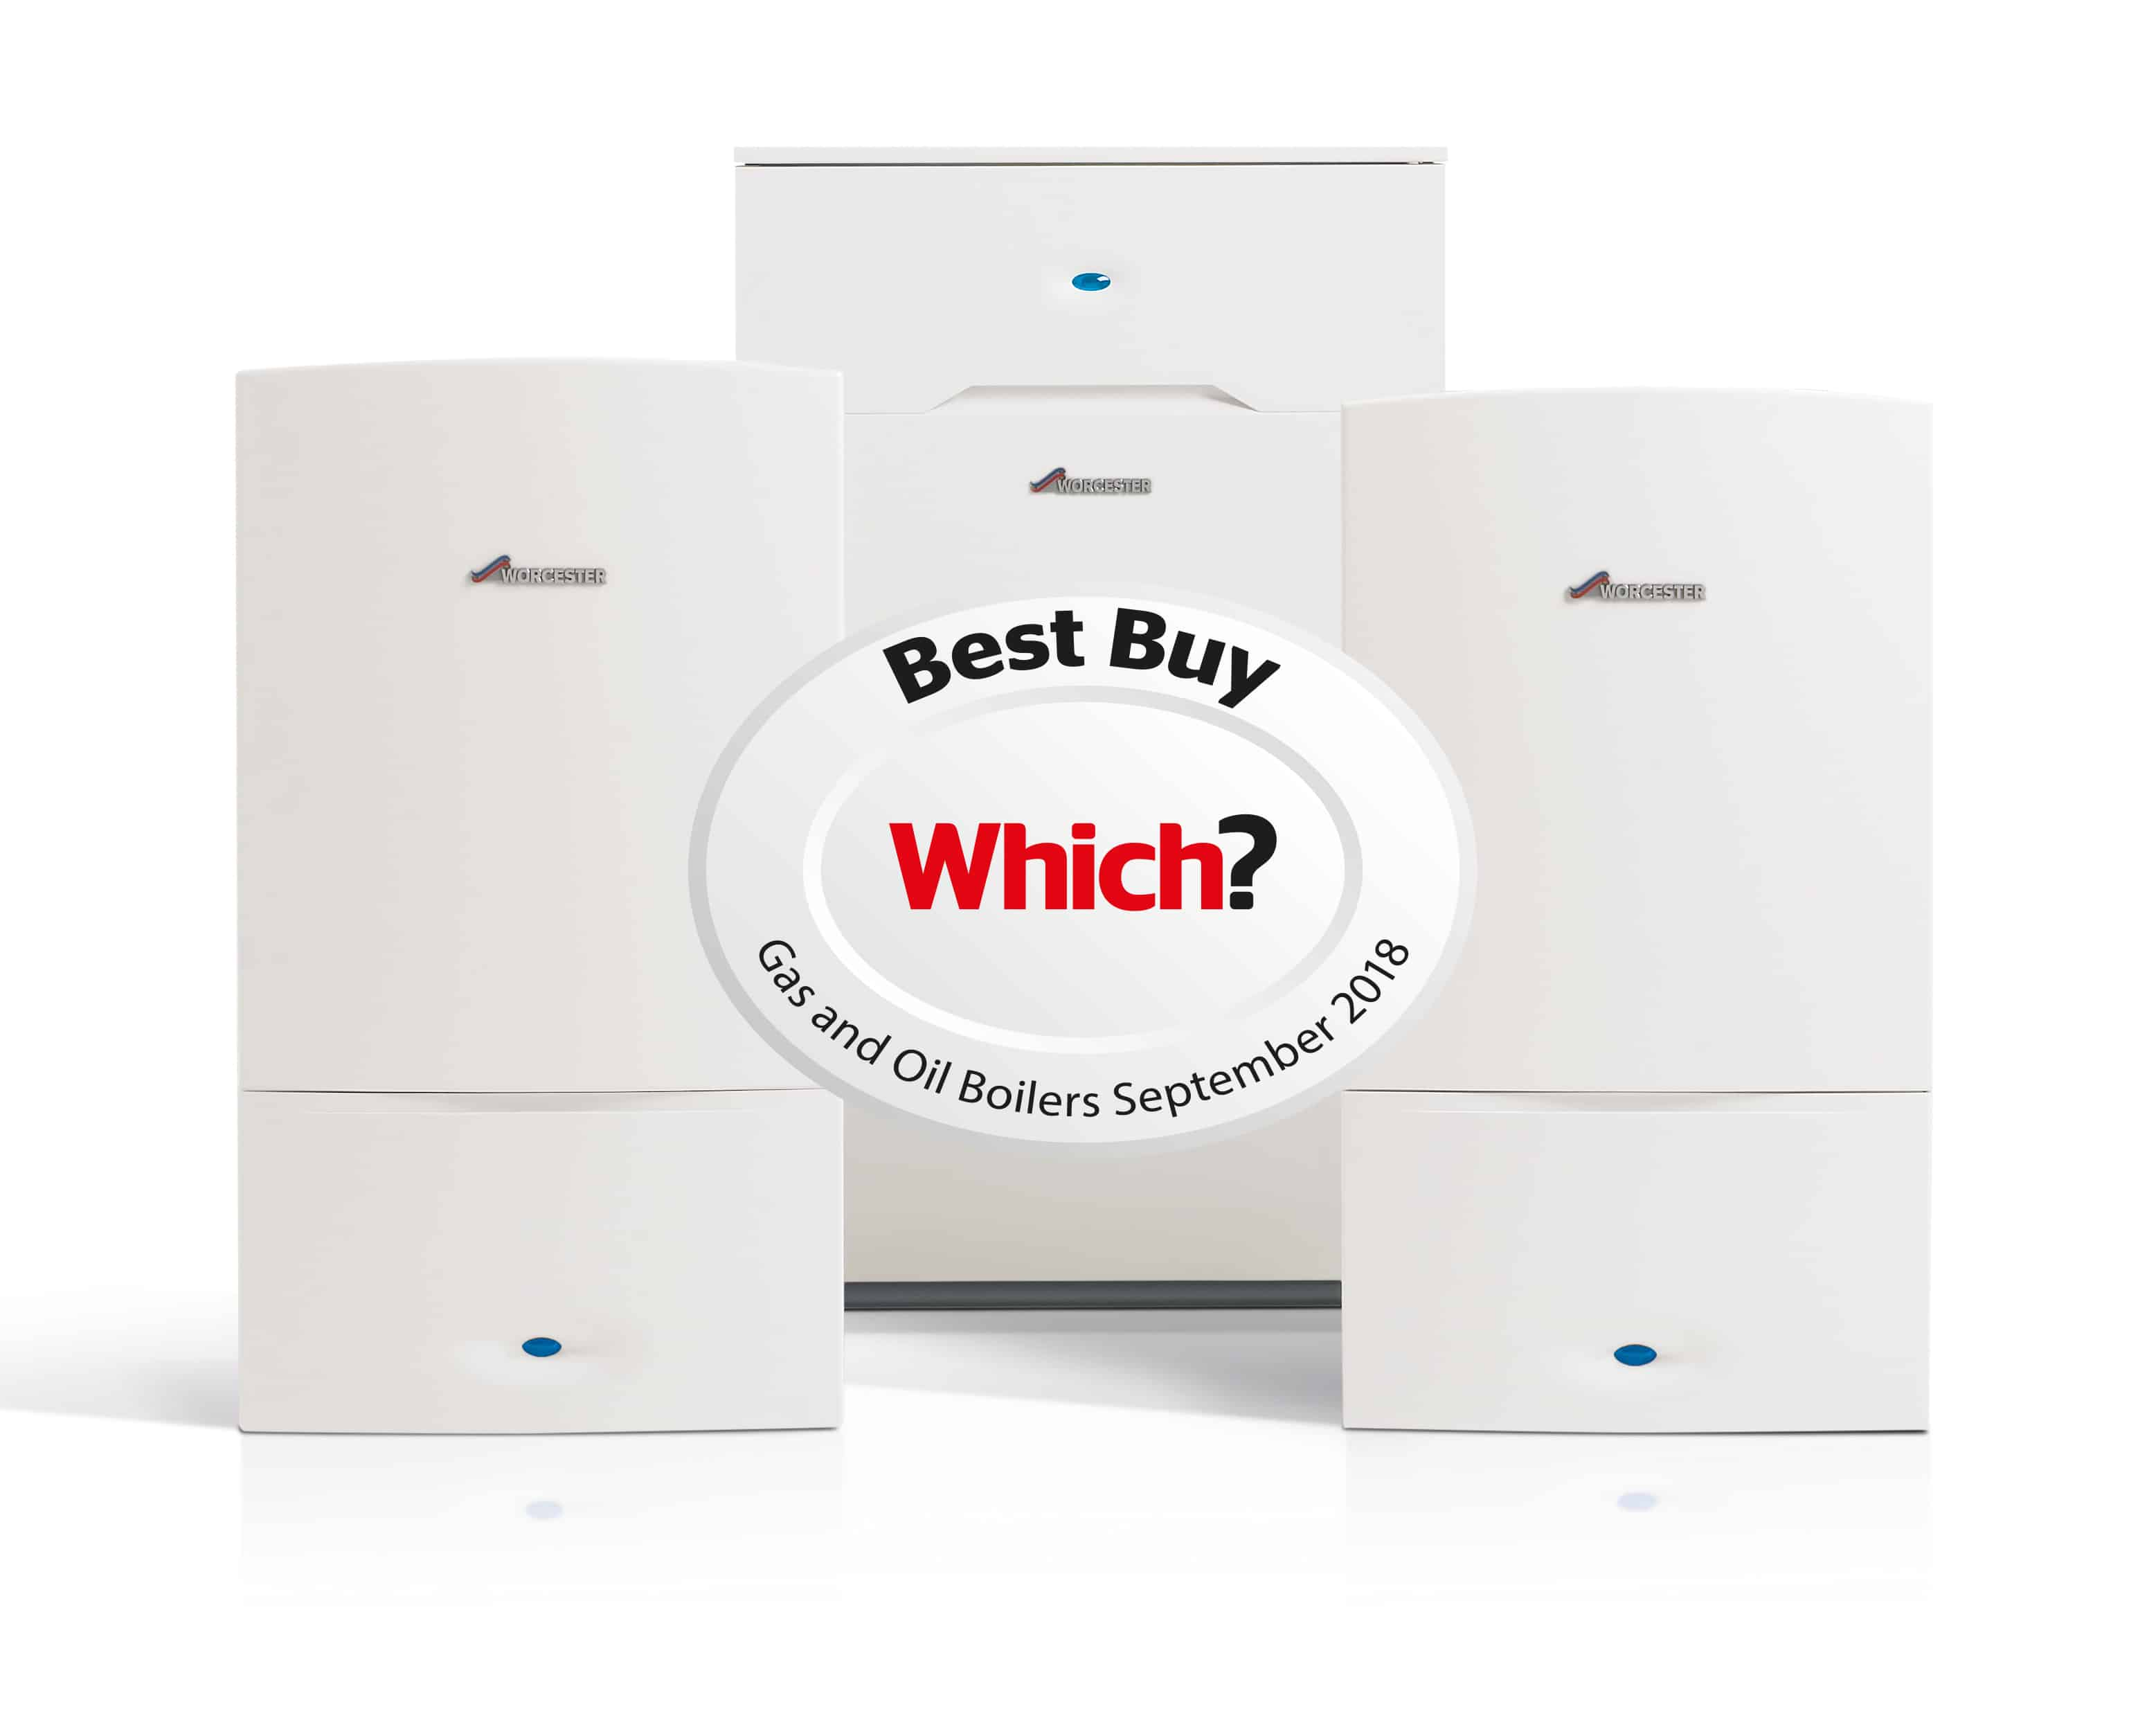 Worcester Bosch; the UK's most loved boiler brand